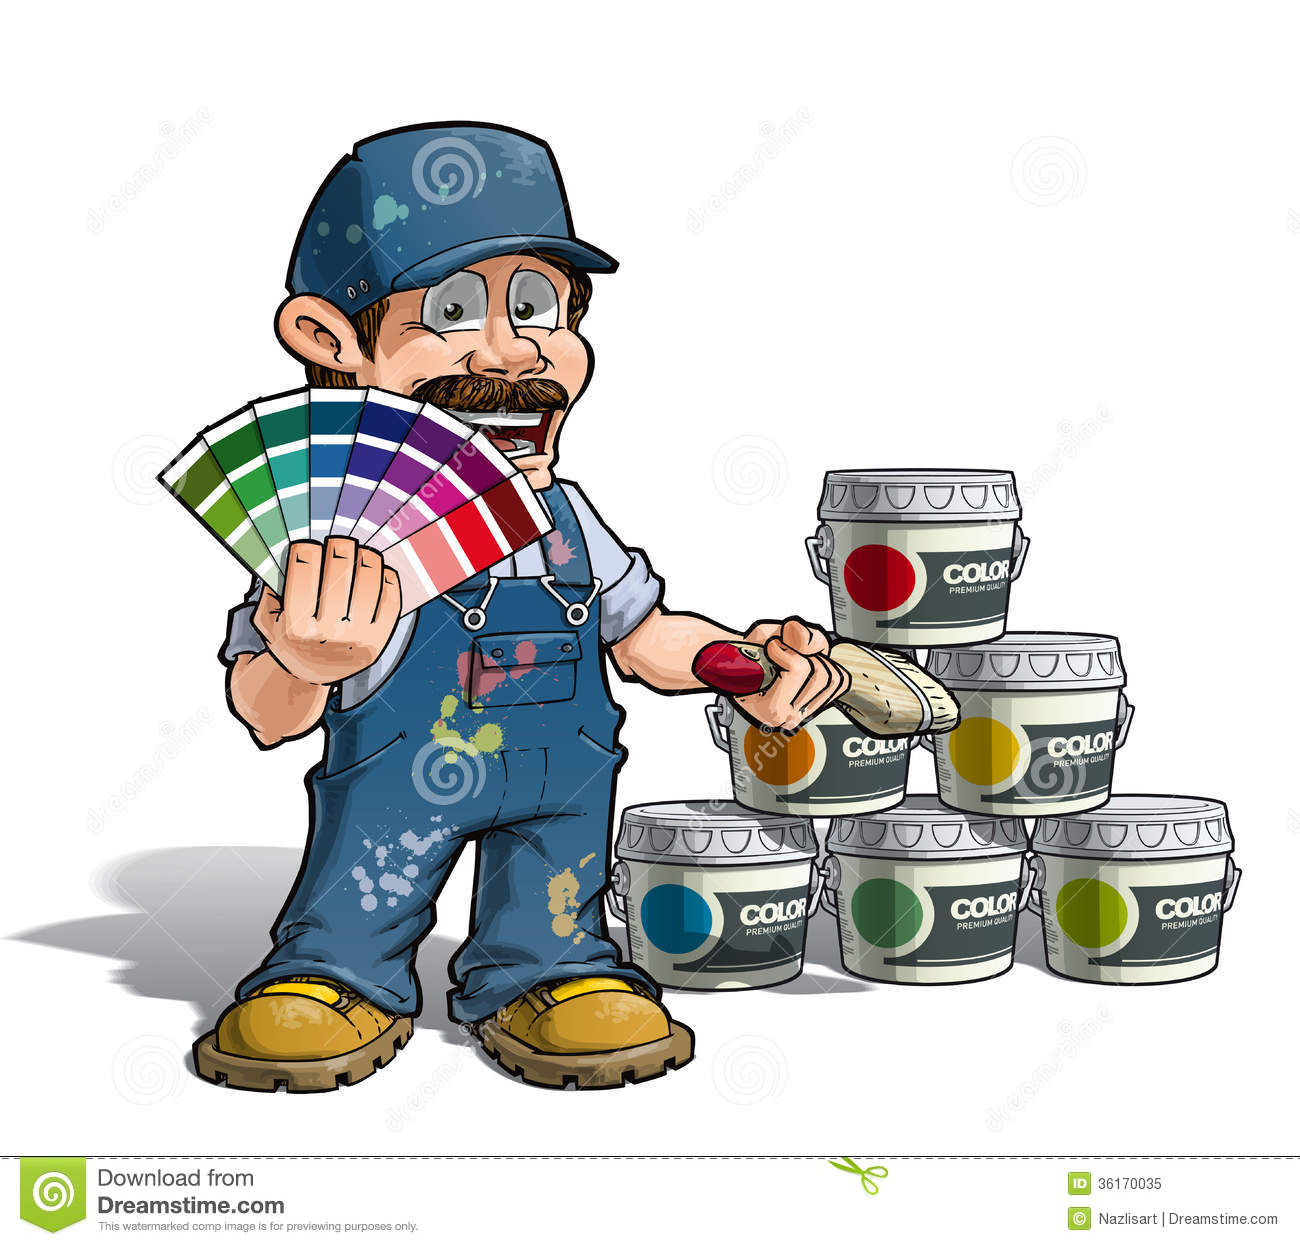 Painter And Decorator Prices >> Handyman - Colour Picking Painter Blue Uniform Royalty Free Stock Photo - Image: 36170035